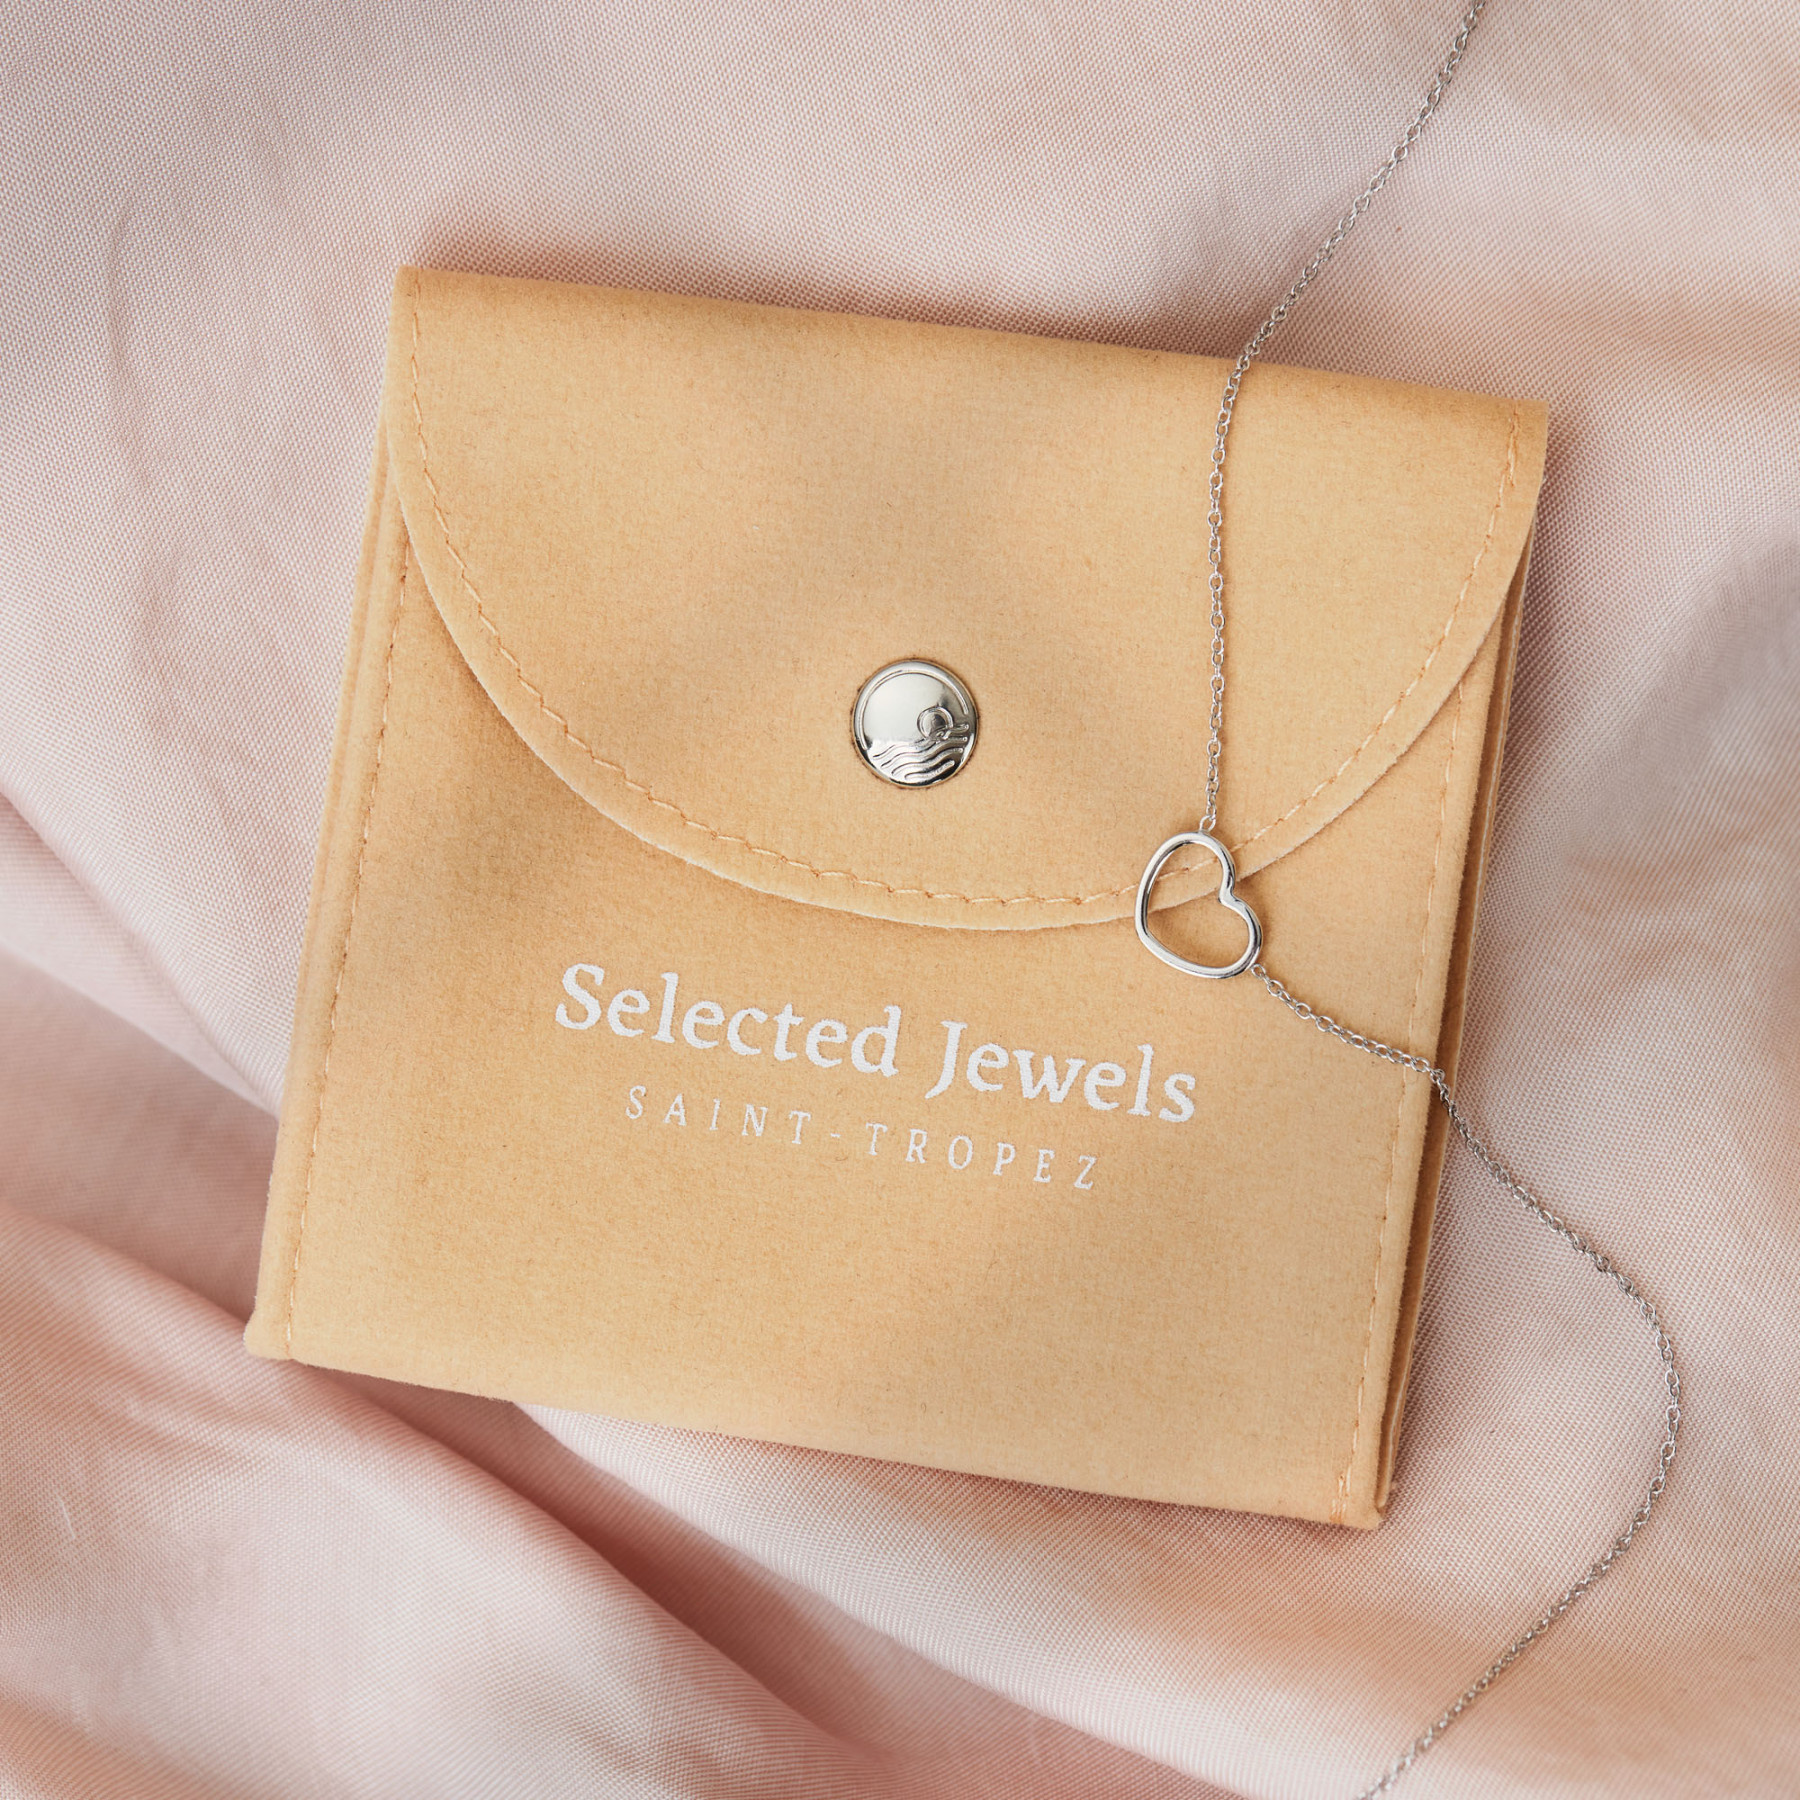 Selected Jewels Julie Charlotte collana color oro in argento sterling 925